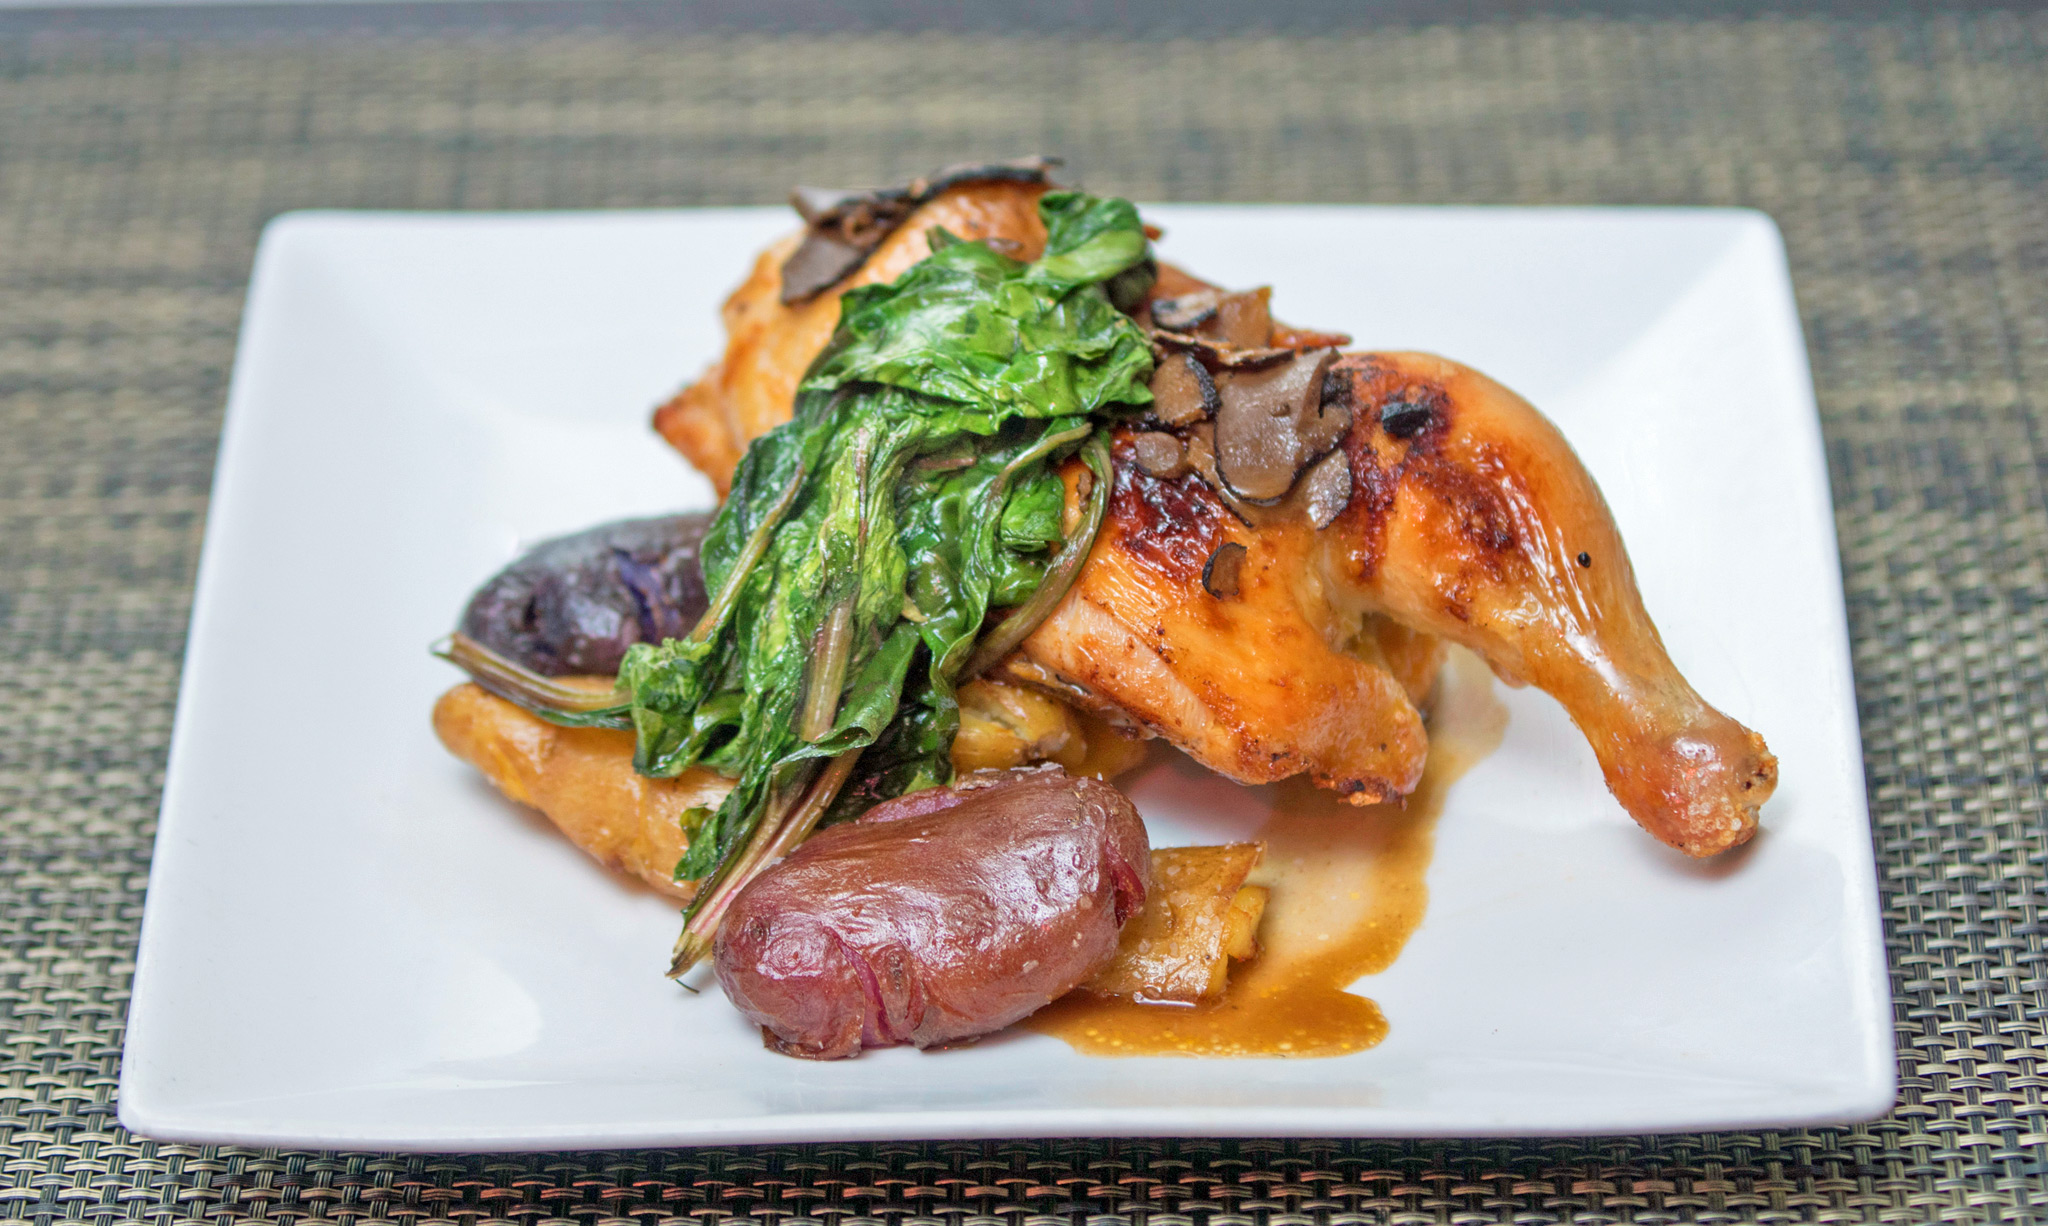 Butter and Thyme Roasted ½ Chicken - crispy fingerlings, sauté greens, truffle au jus